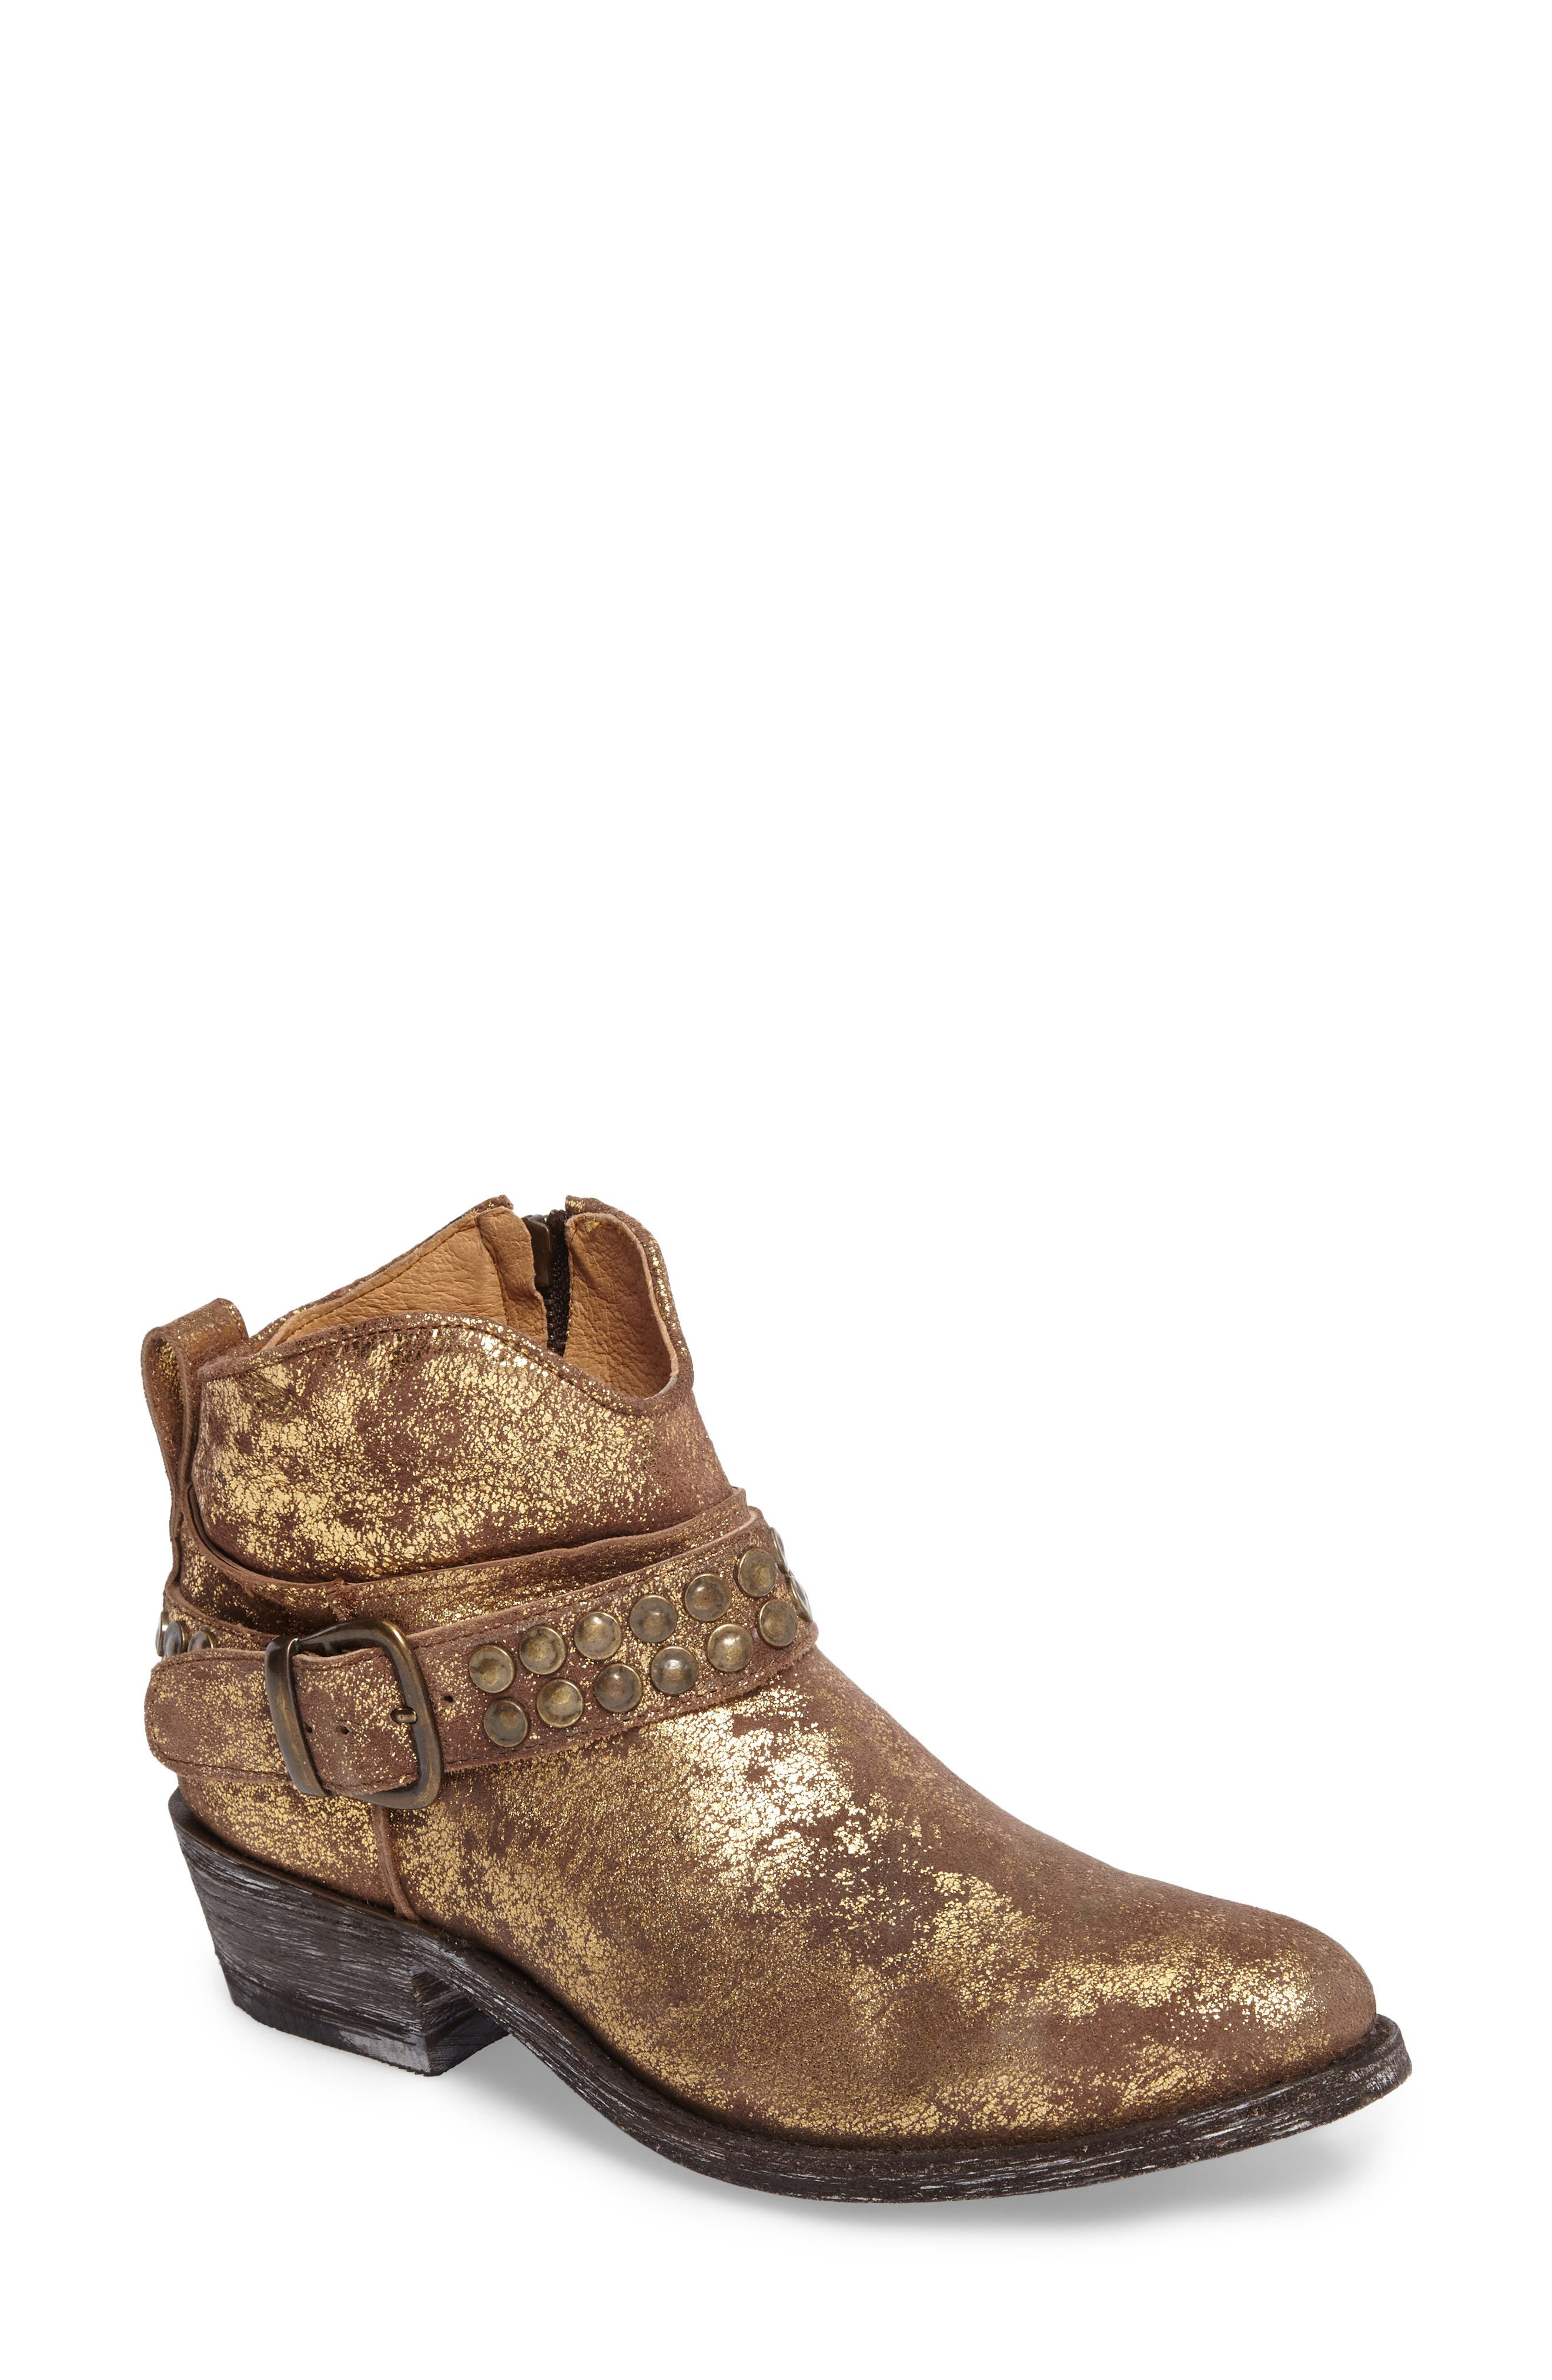 Serene Western Boot,                             Main thumbnail 1, color,                             COPPER LEATHER